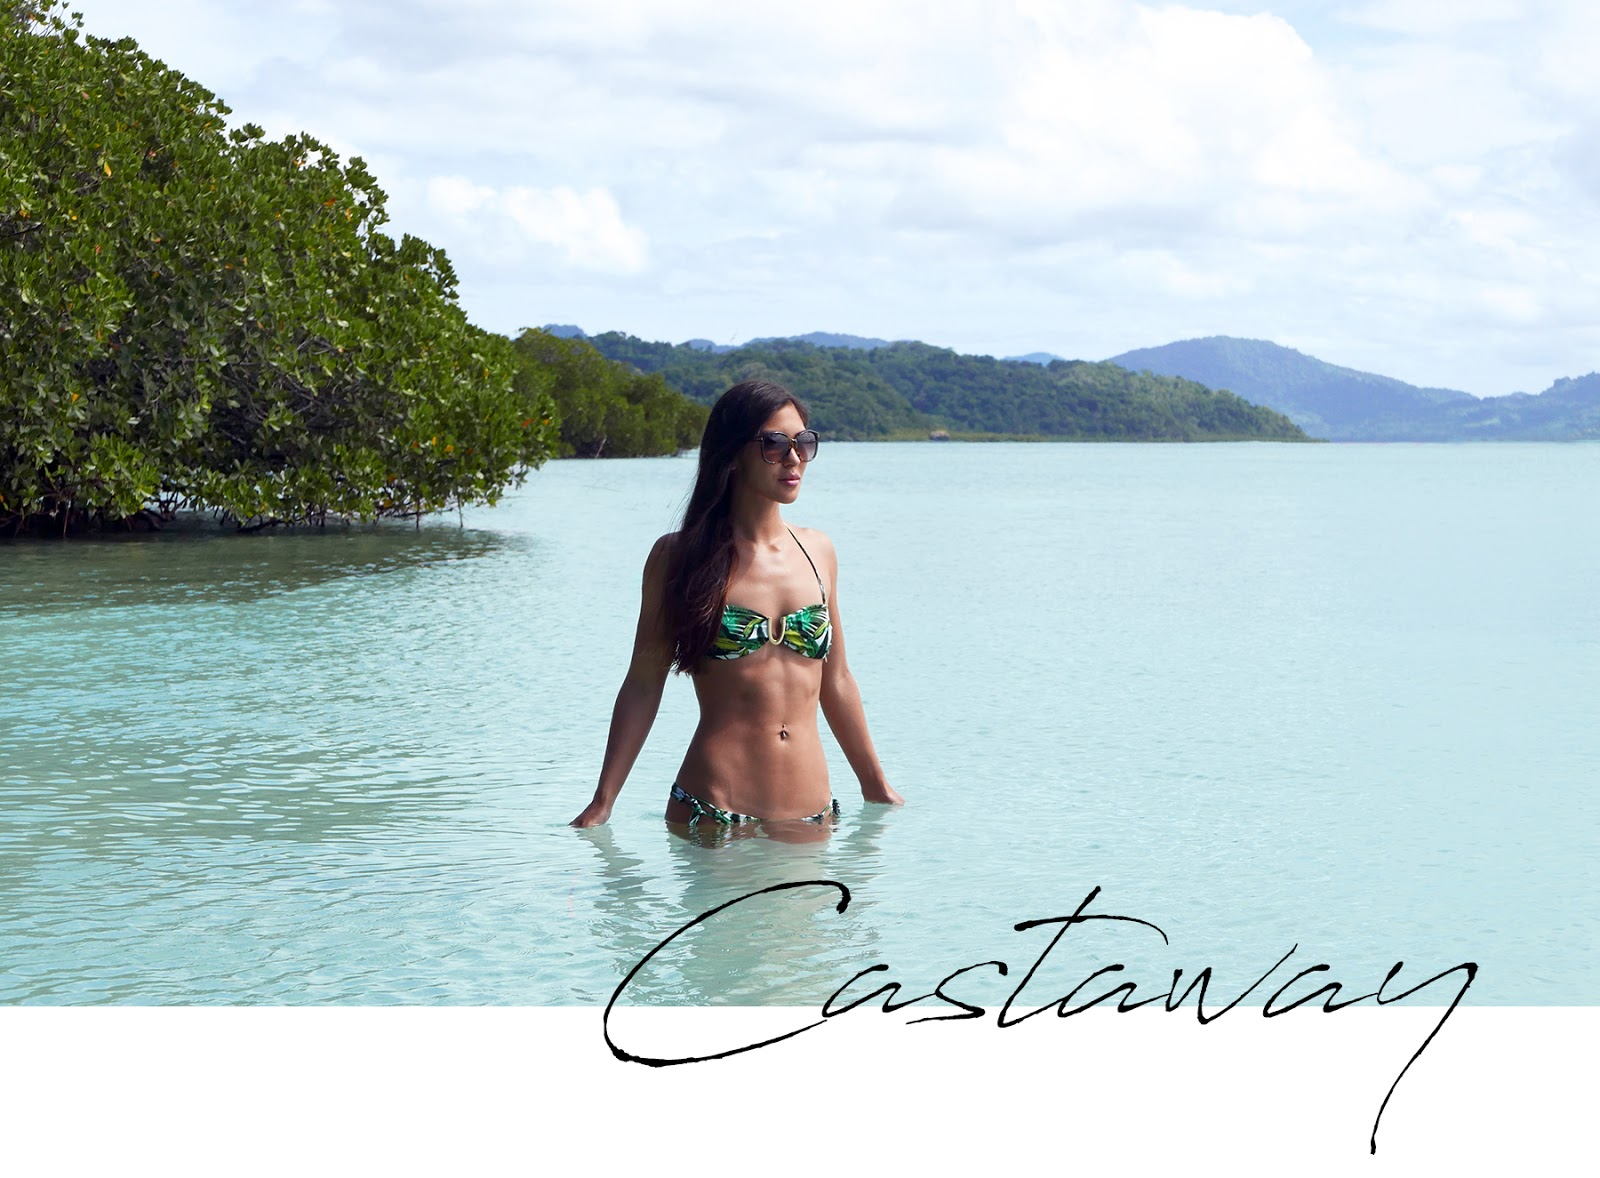 Euriental | luxury travel & style | Hunkemoller bikini, Tom Ford sunglasses, Fiji